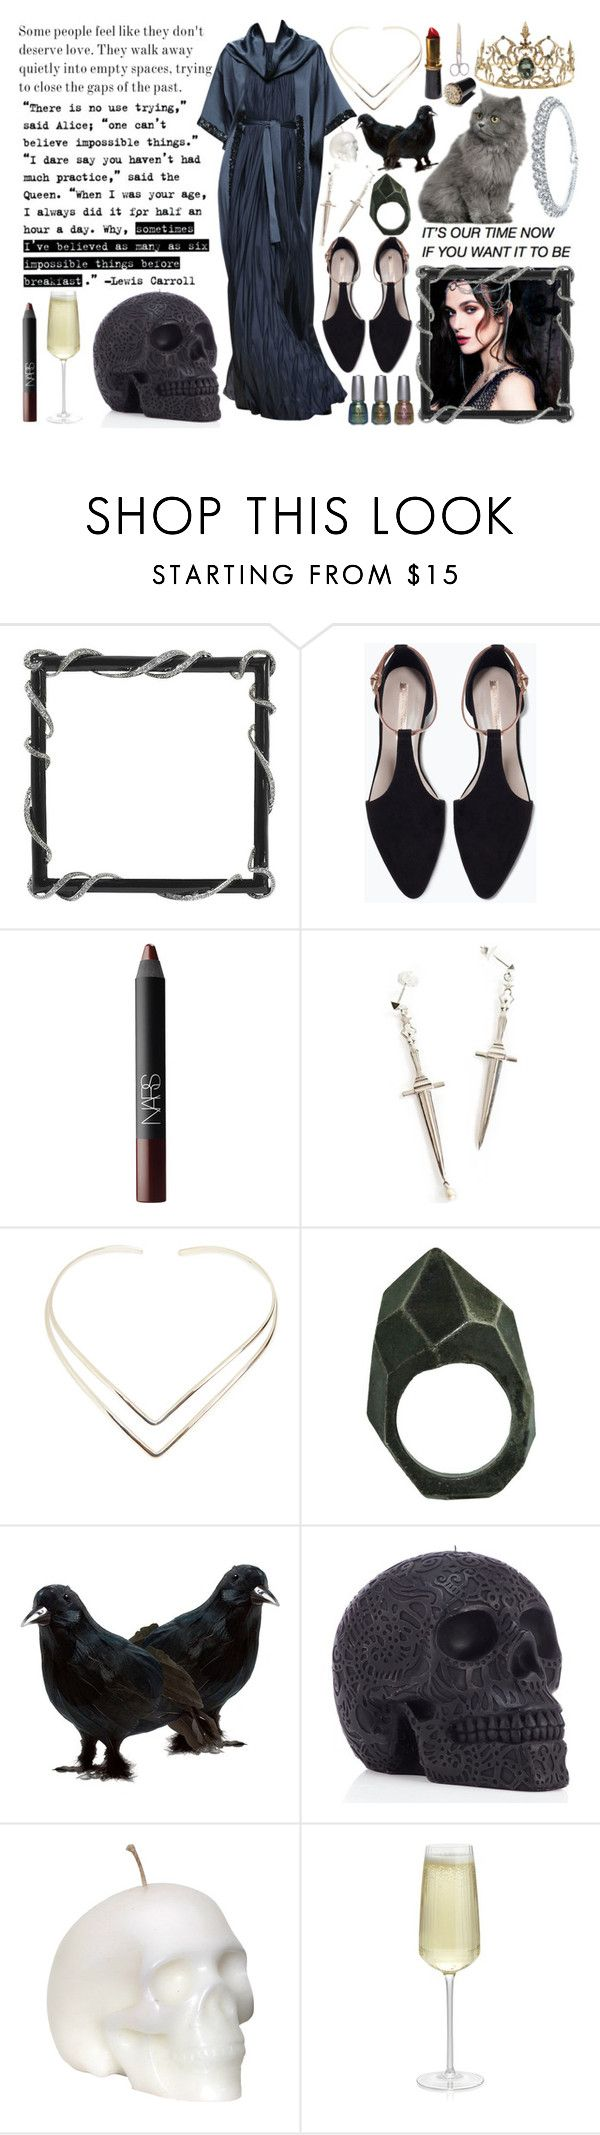 """""""506"""" by lizziestdrane ❤ liked on Polyvore featuring Zara, China Glaze, NARS Cosmetics, Pamela Love, Natalie B, Lady Grey, Once Upon a Time, Crate and Barrel and Bling Jewelry"""